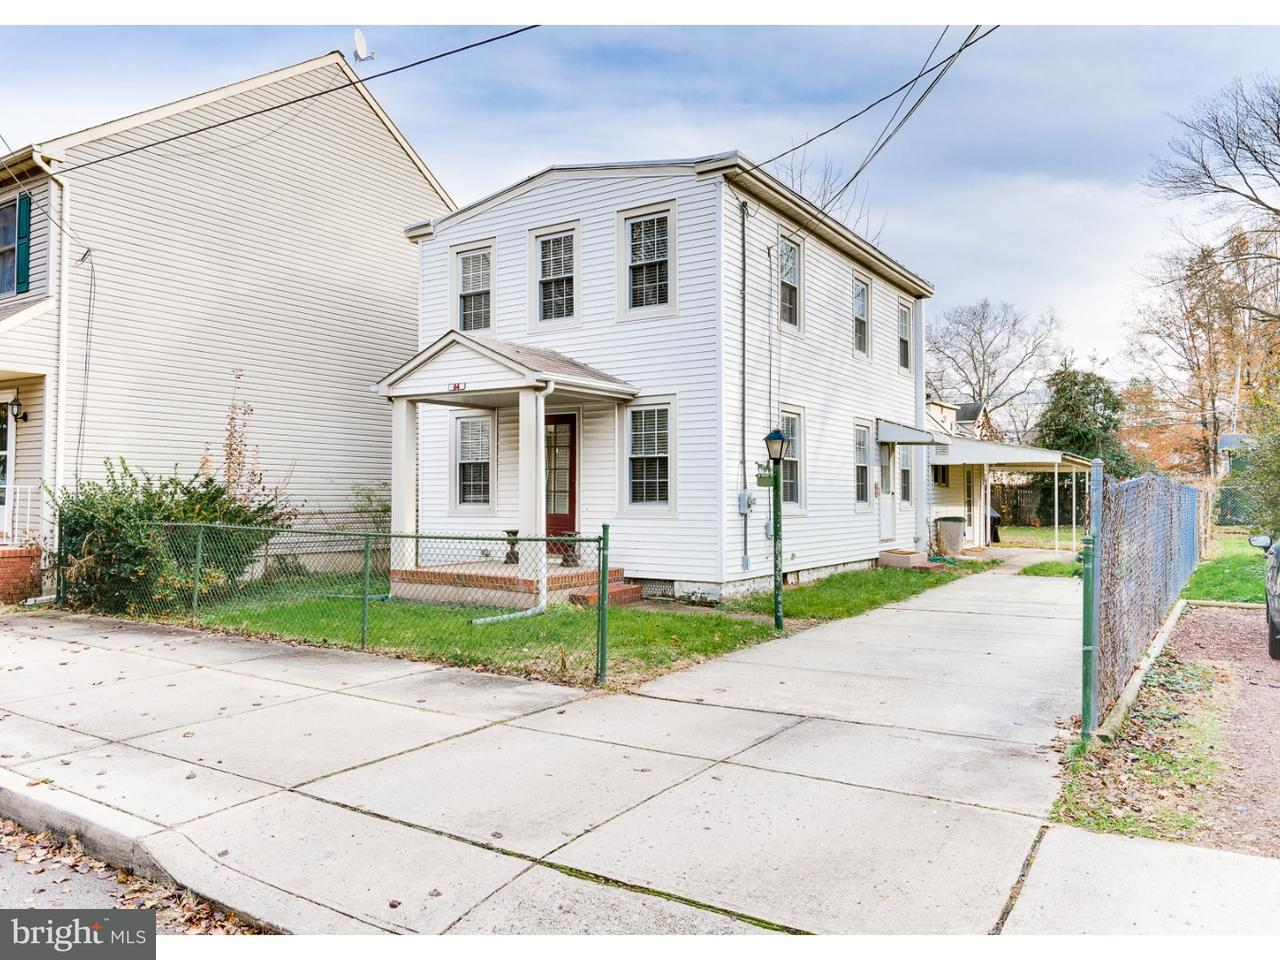 Single Family Home for Rent at 64 MARY Street Bordentown, New Jersey 08505 United States